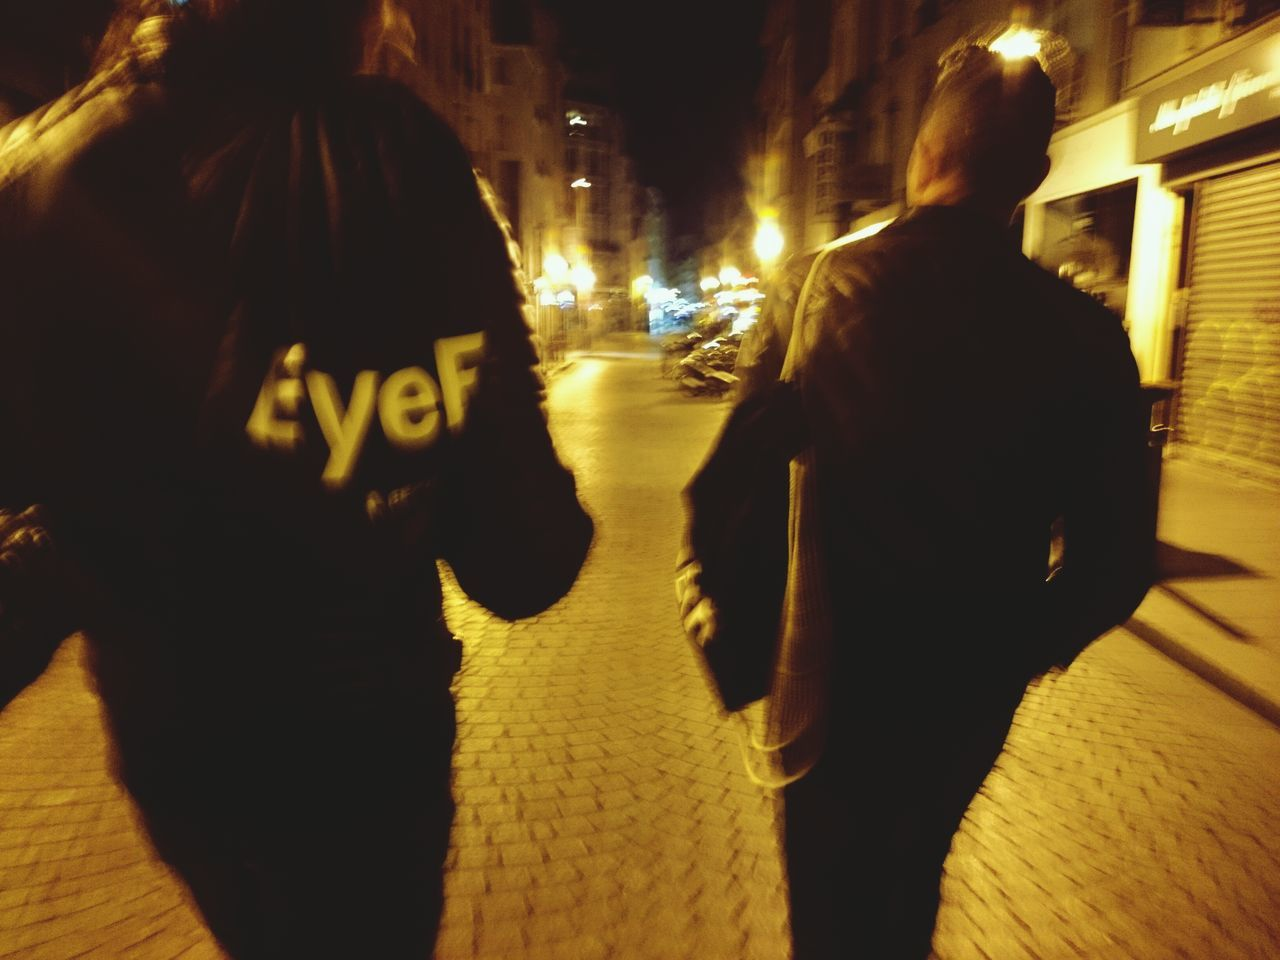 night, street, city, rear view, blurred motion, walking, real people, illuminated, building exterior, architecture, outdoors, men, people